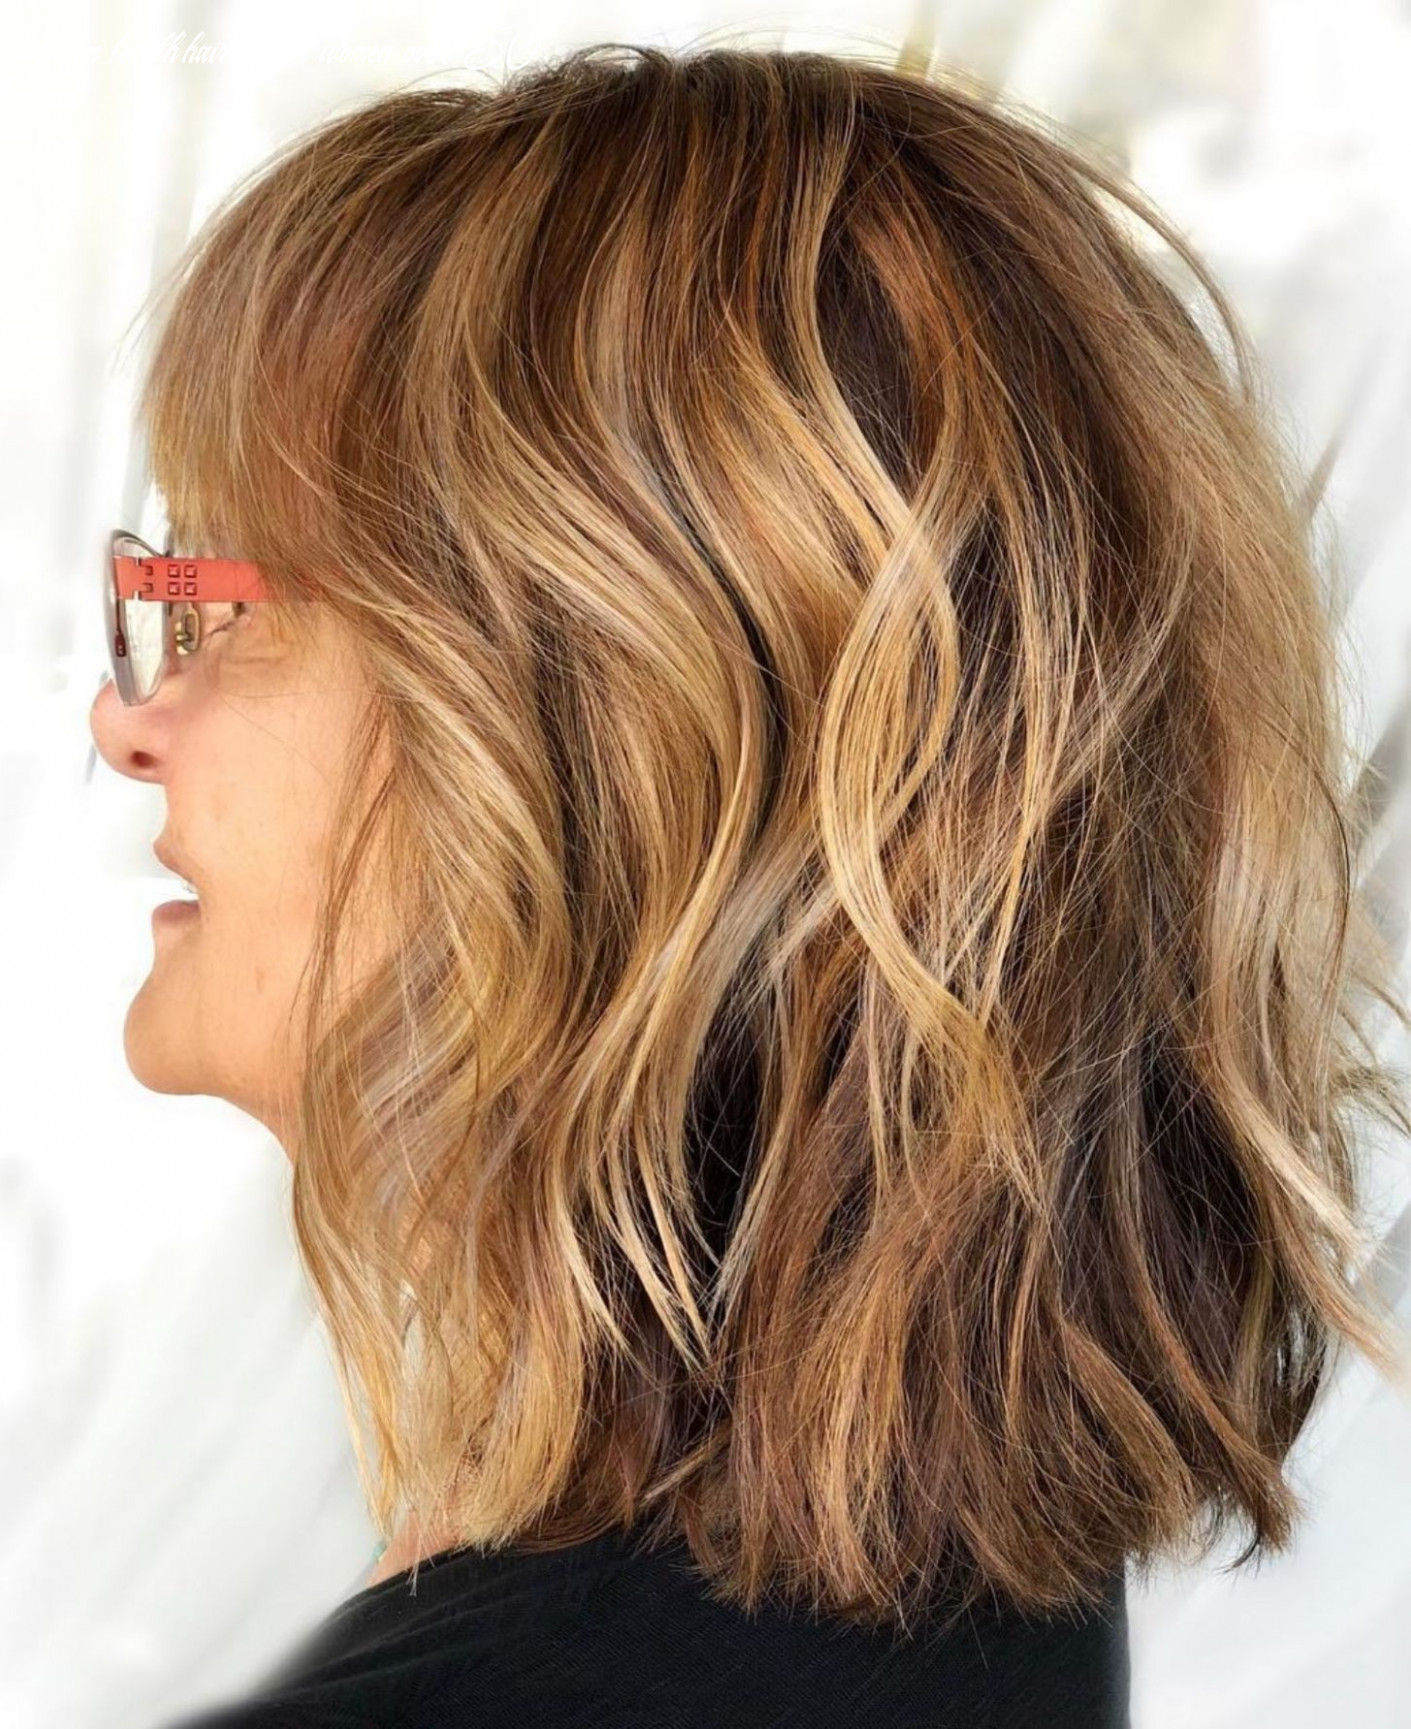 10 best modern hairstyles and haircuts for women over 10 | bob